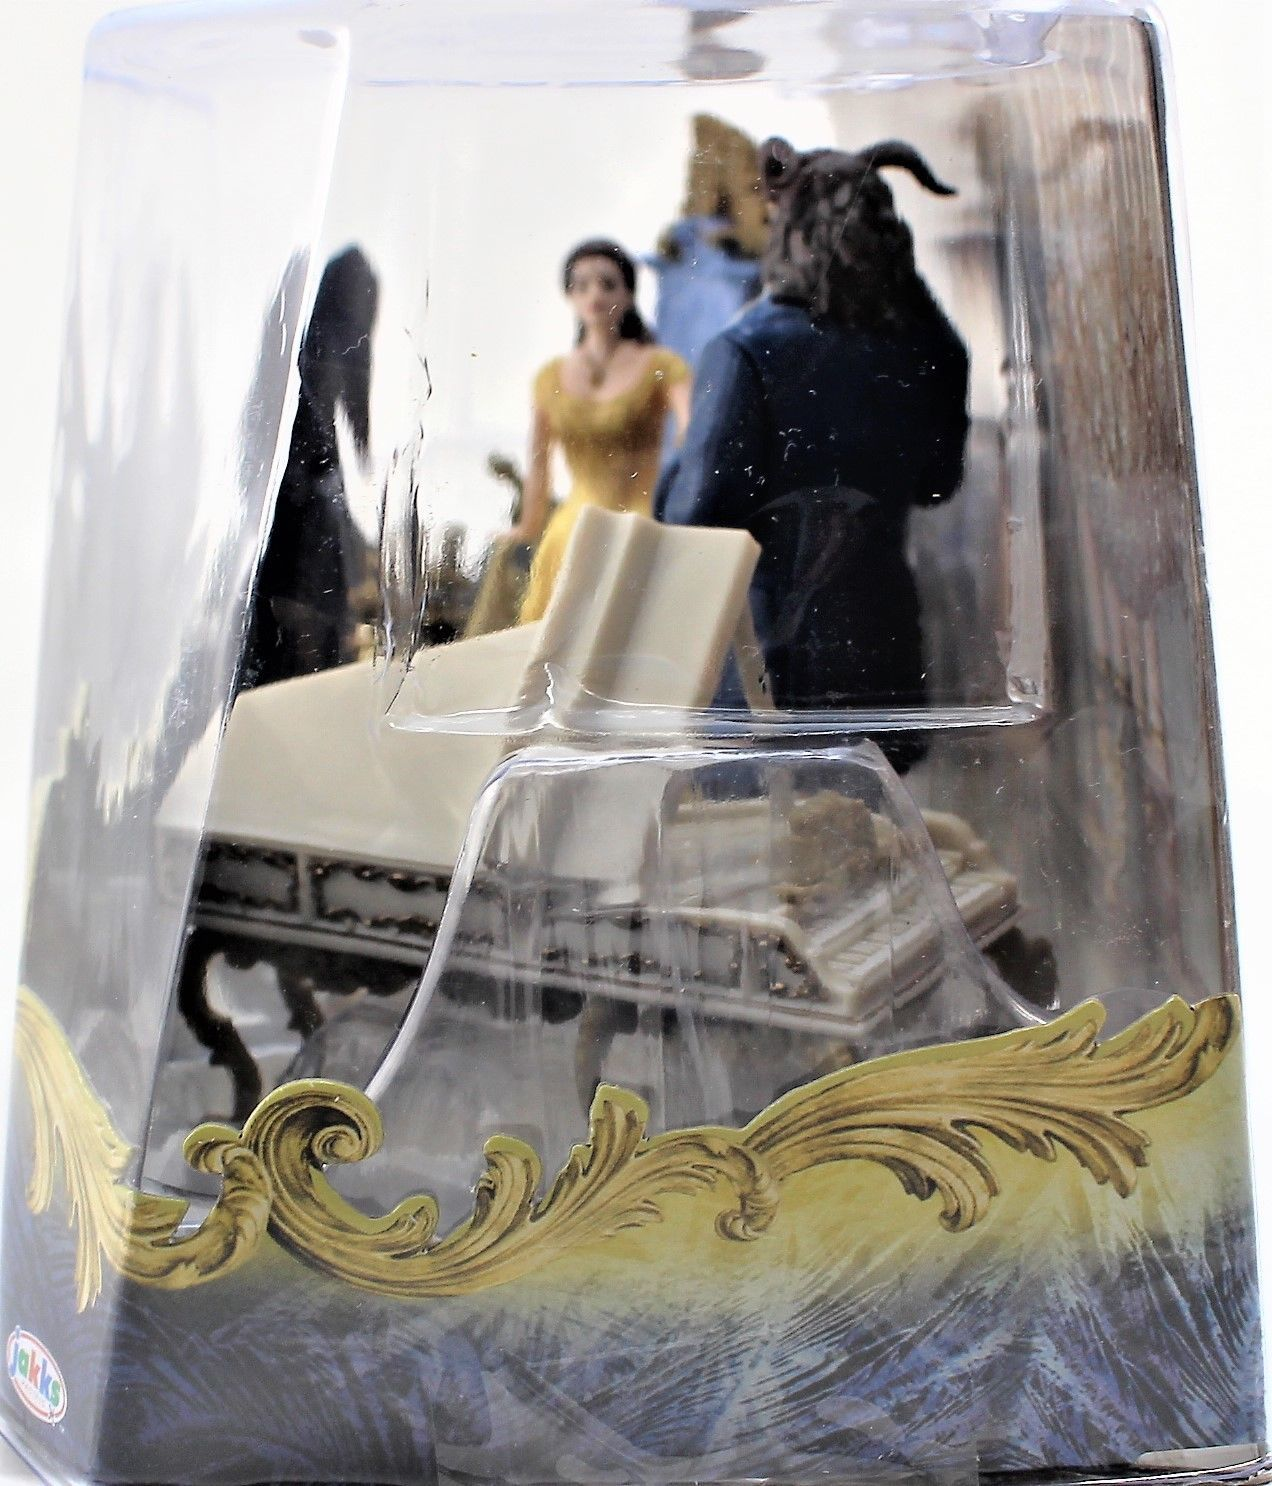 Beauty And The Beast Live Action Enchanted Figurine Set - READ DESCRIPTION